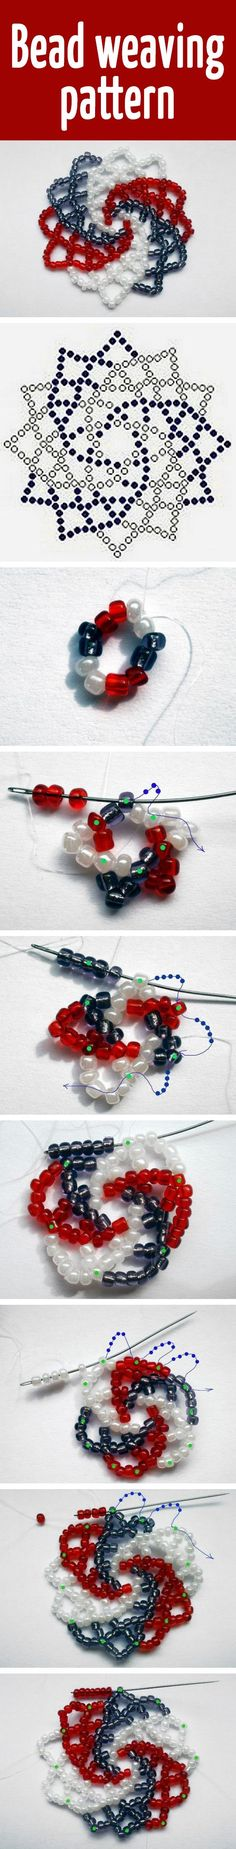 Bead weaving pattern